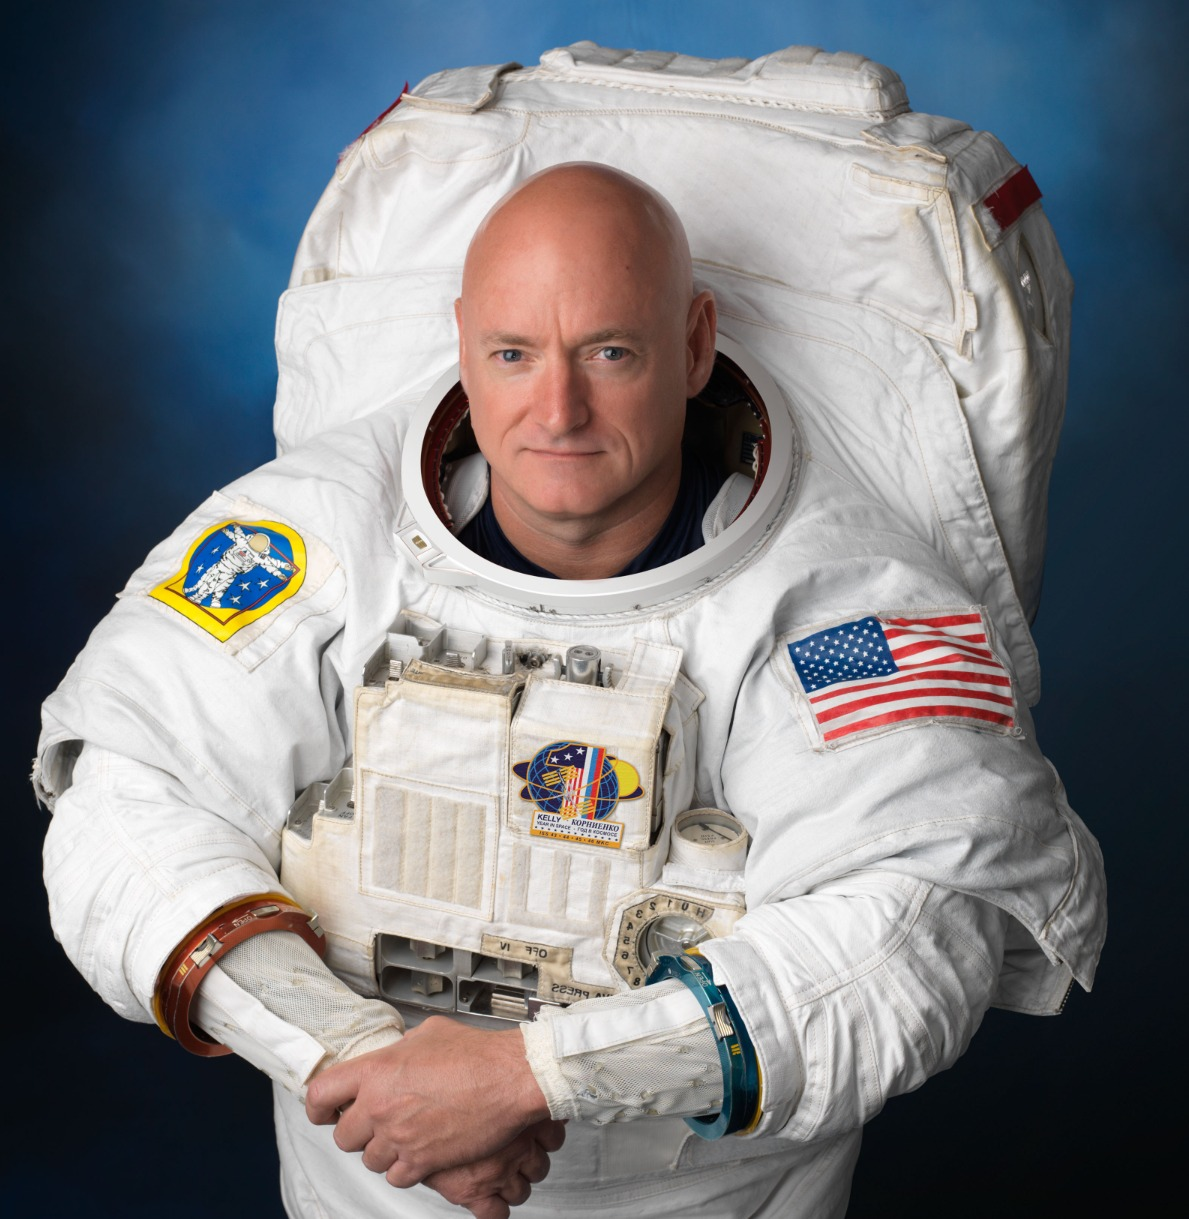 Cpt. Scott Kelly